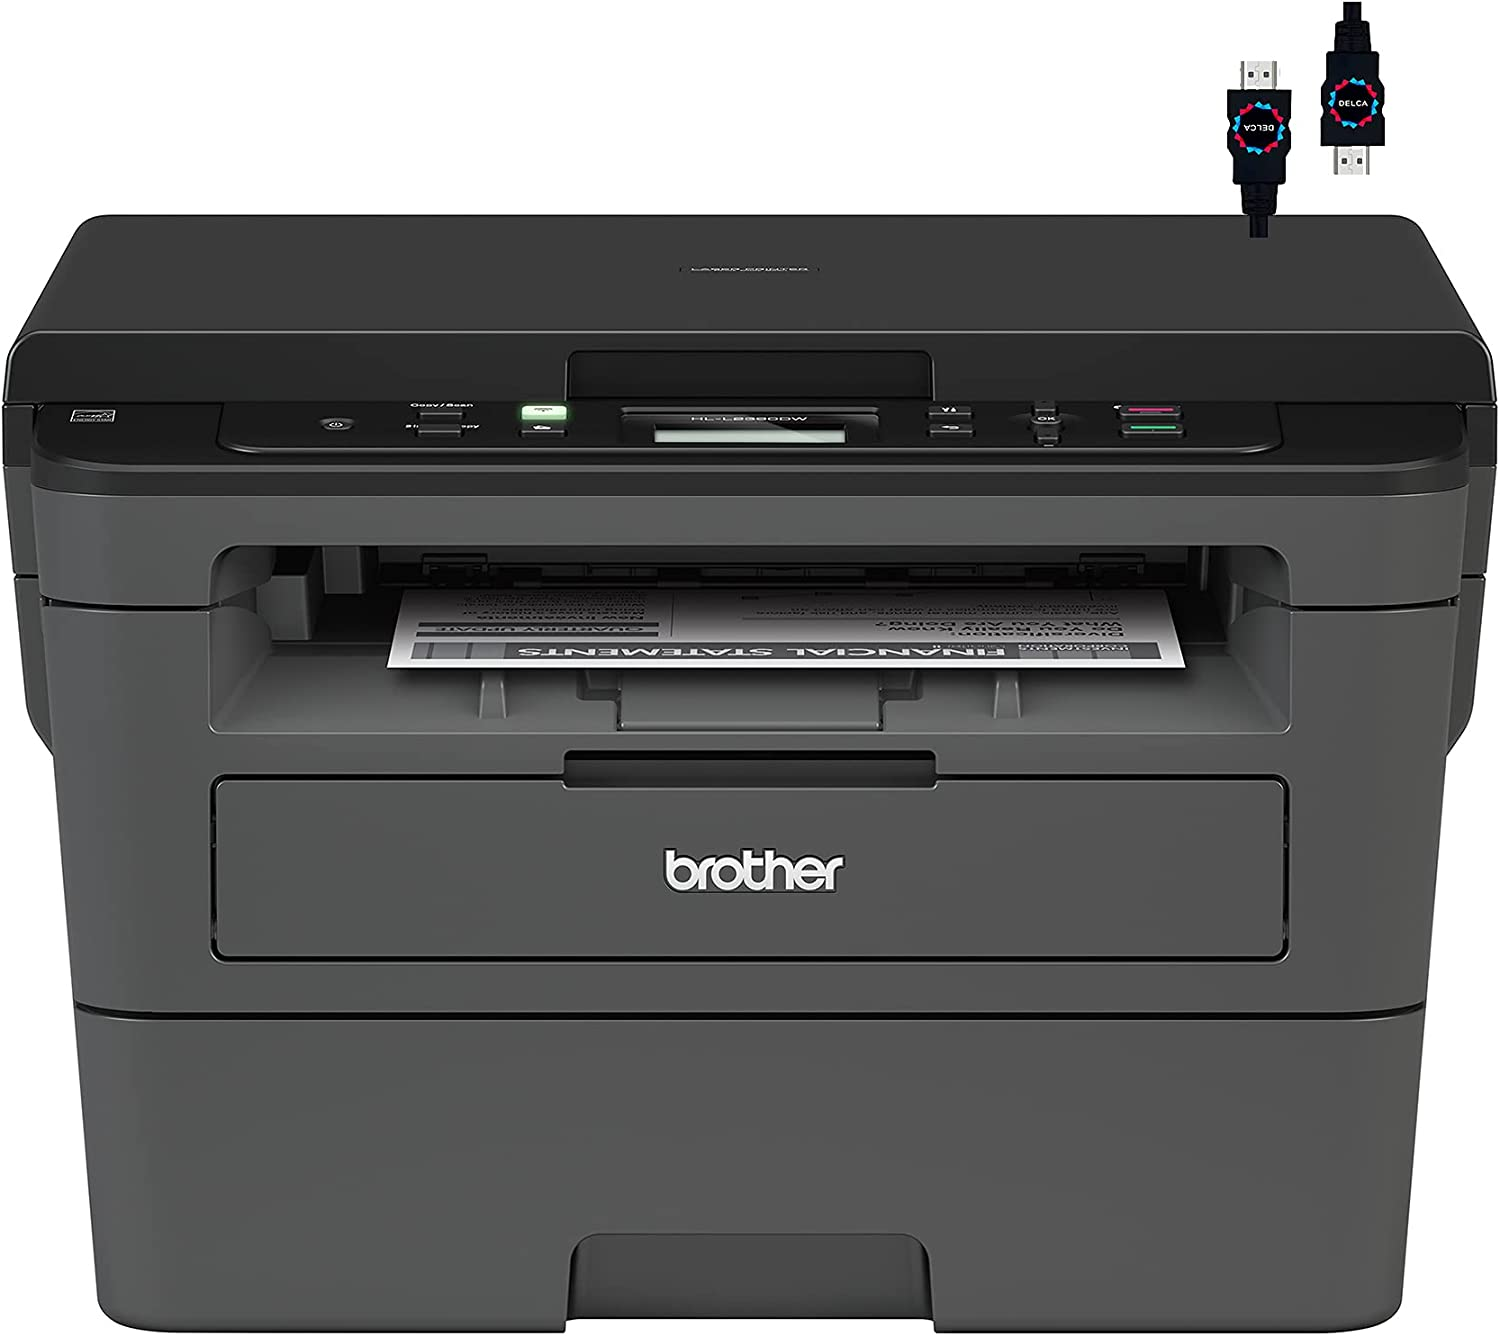 Brother Premium HL L23 Series Compact Monochrome Laser All-in-One Laser Printer I Print Scan Copy I Wireless | Mobile Printing I Auto 2-Sided Printing I Up to 32 Pages/Min + HDMI Cable